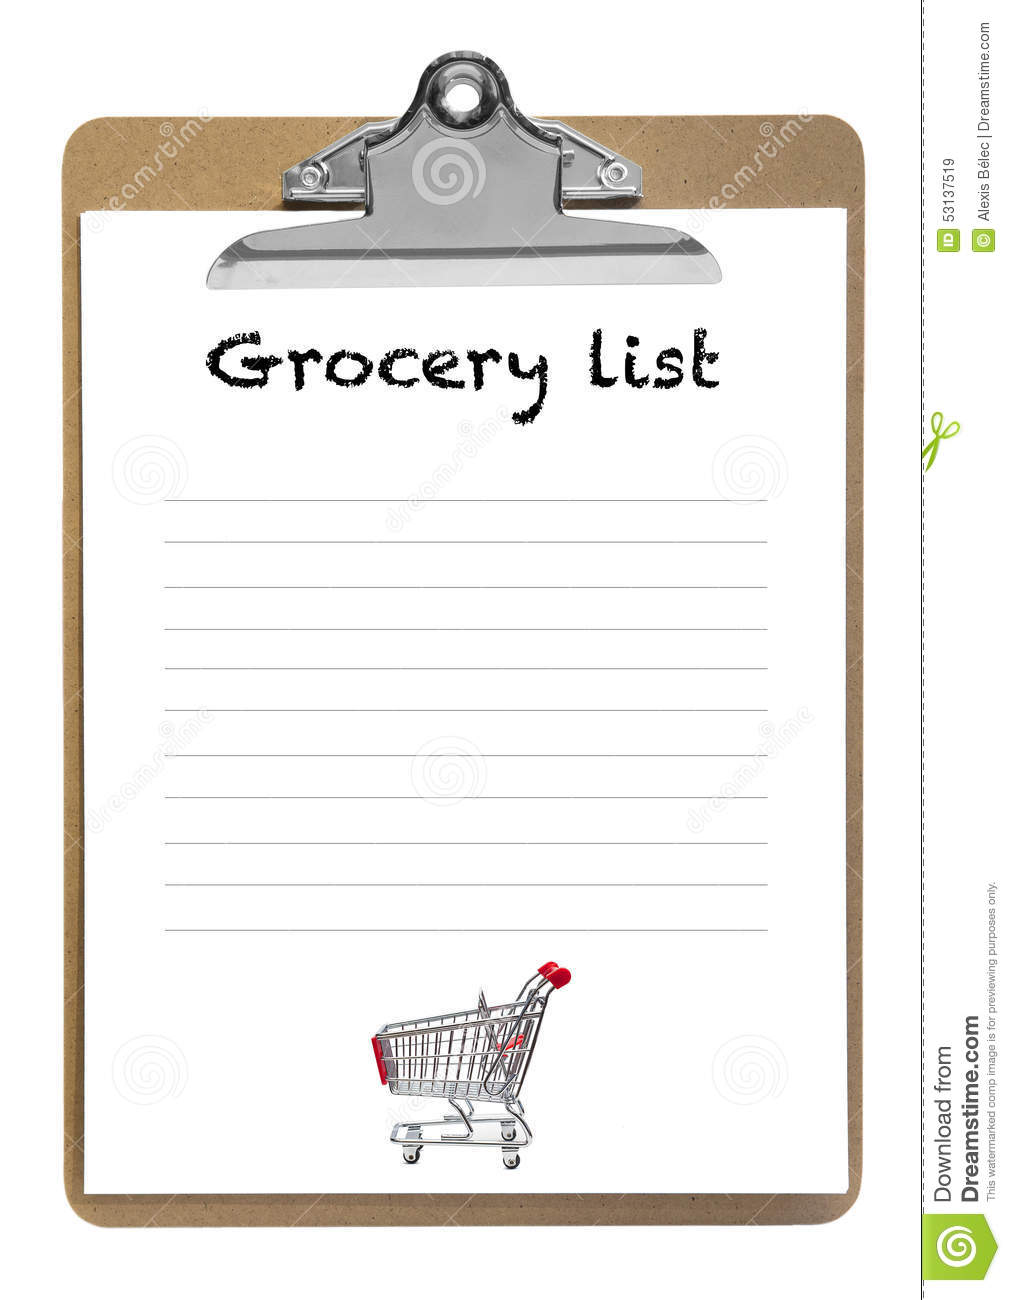 Clipart grocery list clip transparent library Grocery List Stock Photo - Image: 53137519 clip transparent library